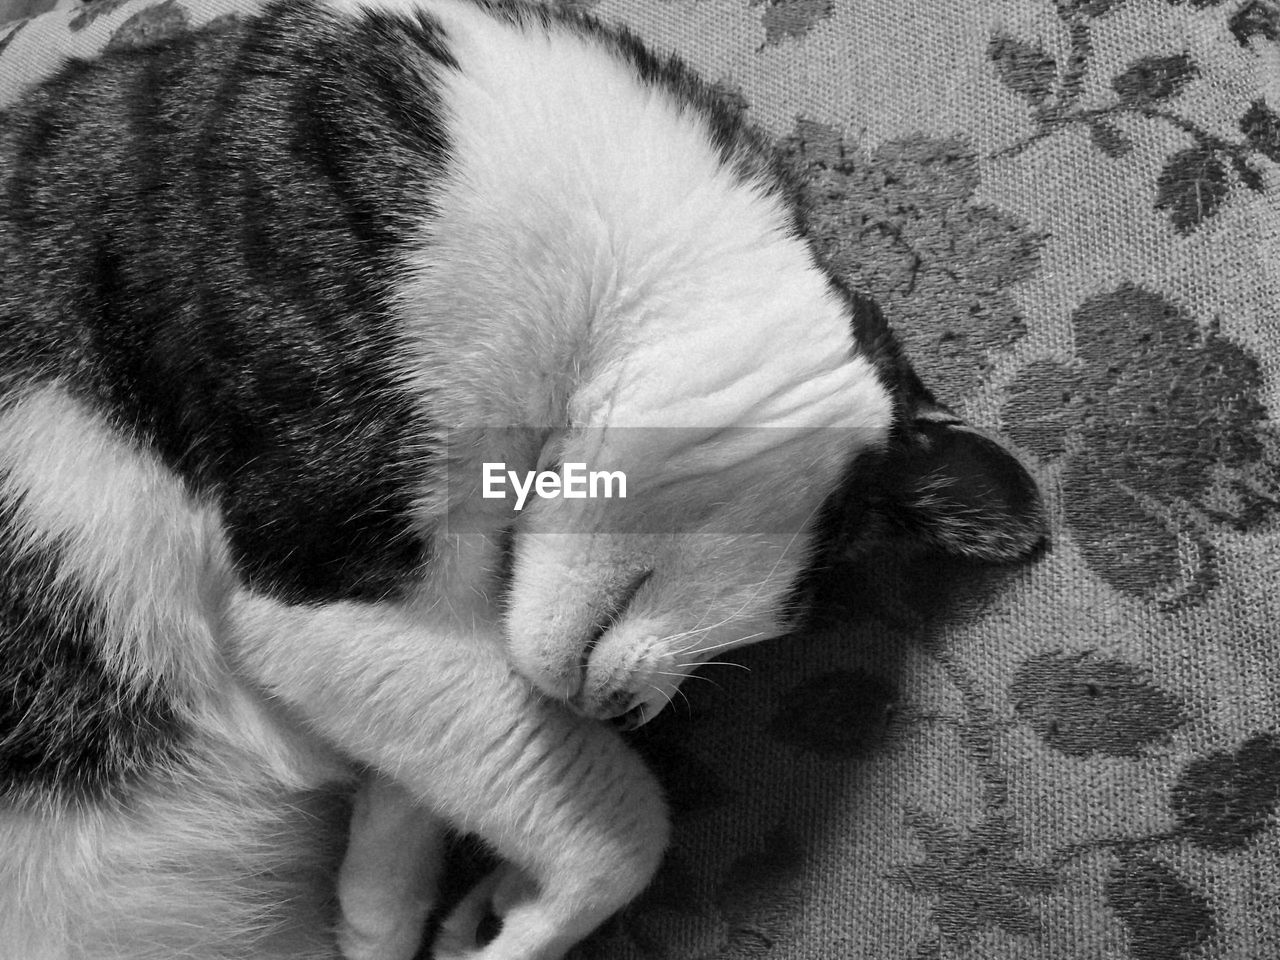 one animal, pets, animal themes, sleeping, high angle view, domestic animals, mammal, eyes closed, indoors, no people, domestic cat, close-up, relaxation, day